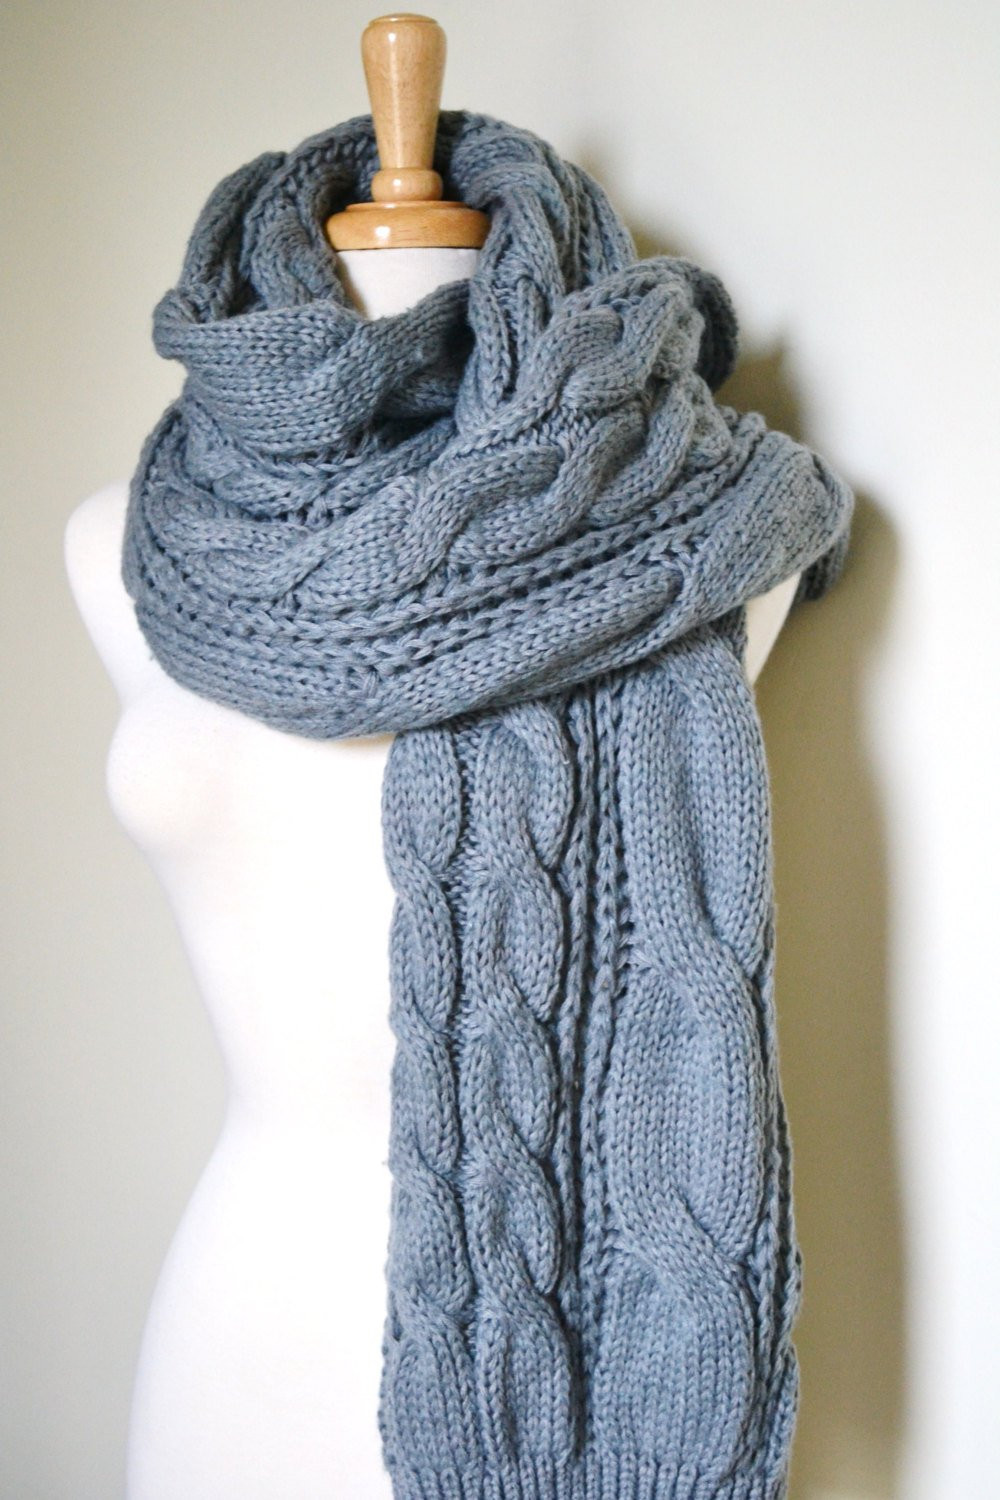 New Grey Super Chunky Knitted Cable Scarf Uni Cozy Winter Cable Knit Scarf Of Delightful 48 Ideas Cable Knit Scarf